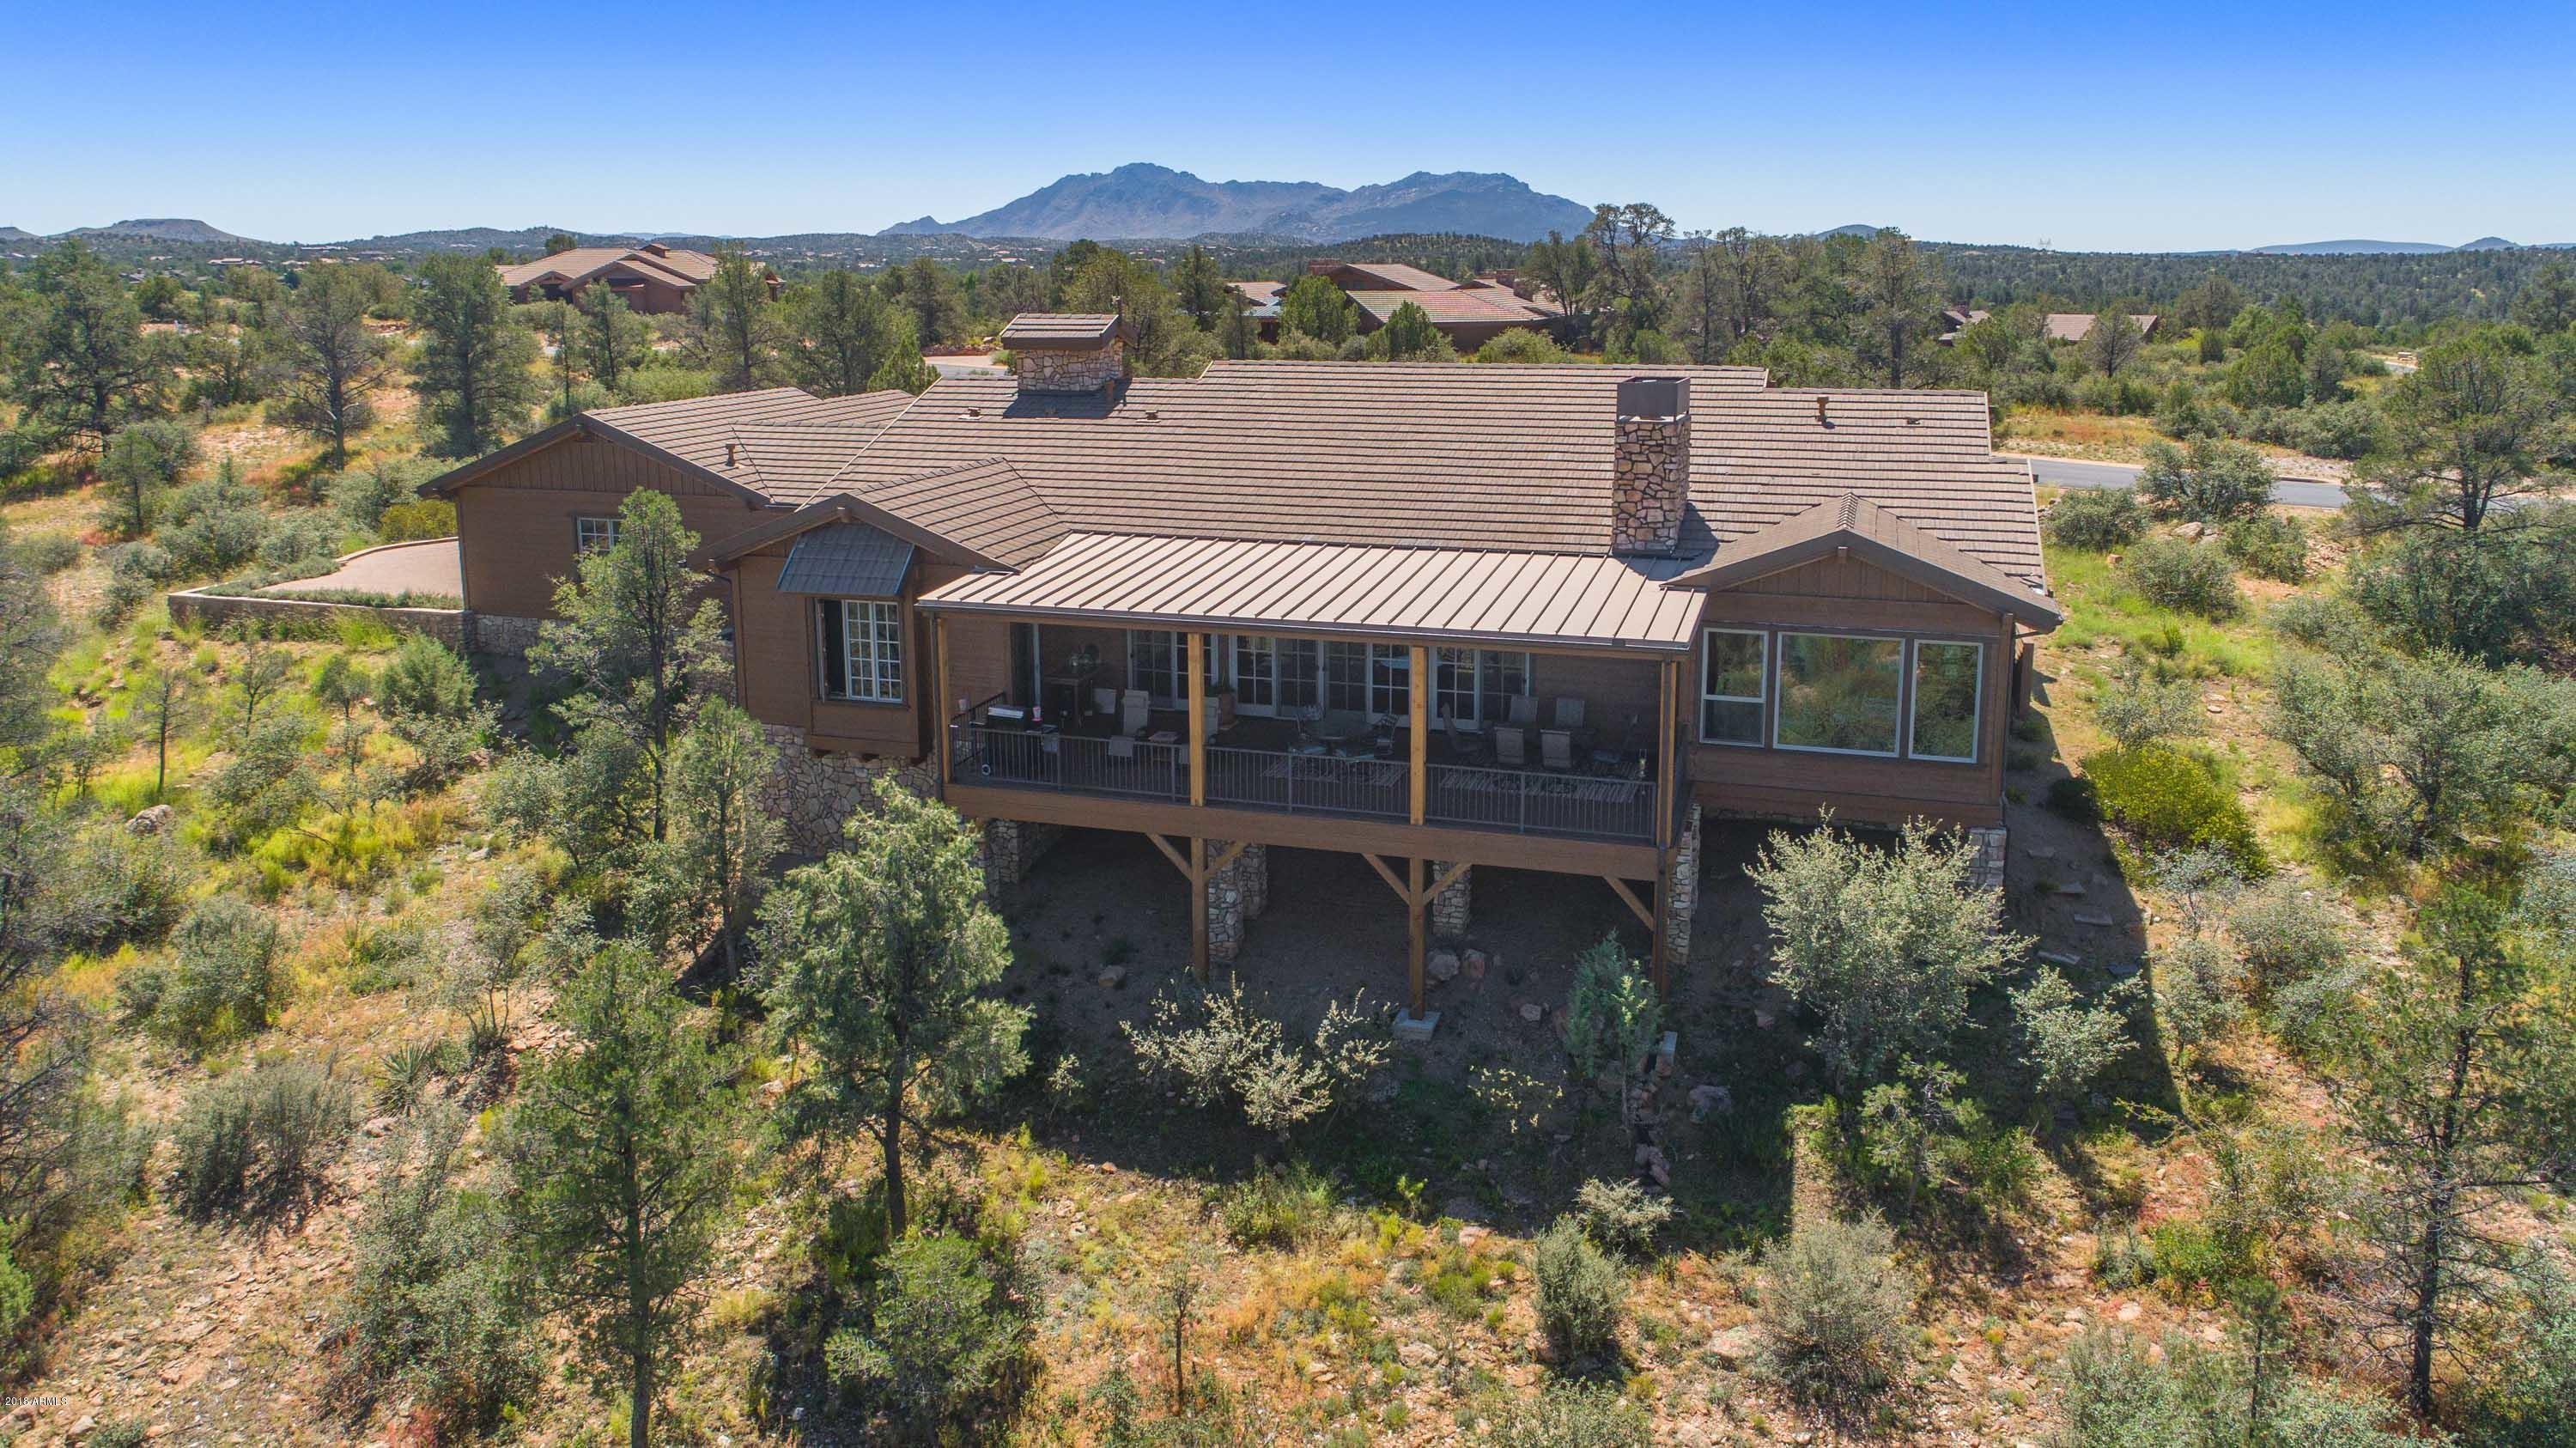 11960 W COOPER MORGAN Trail, Prescott, Arizona